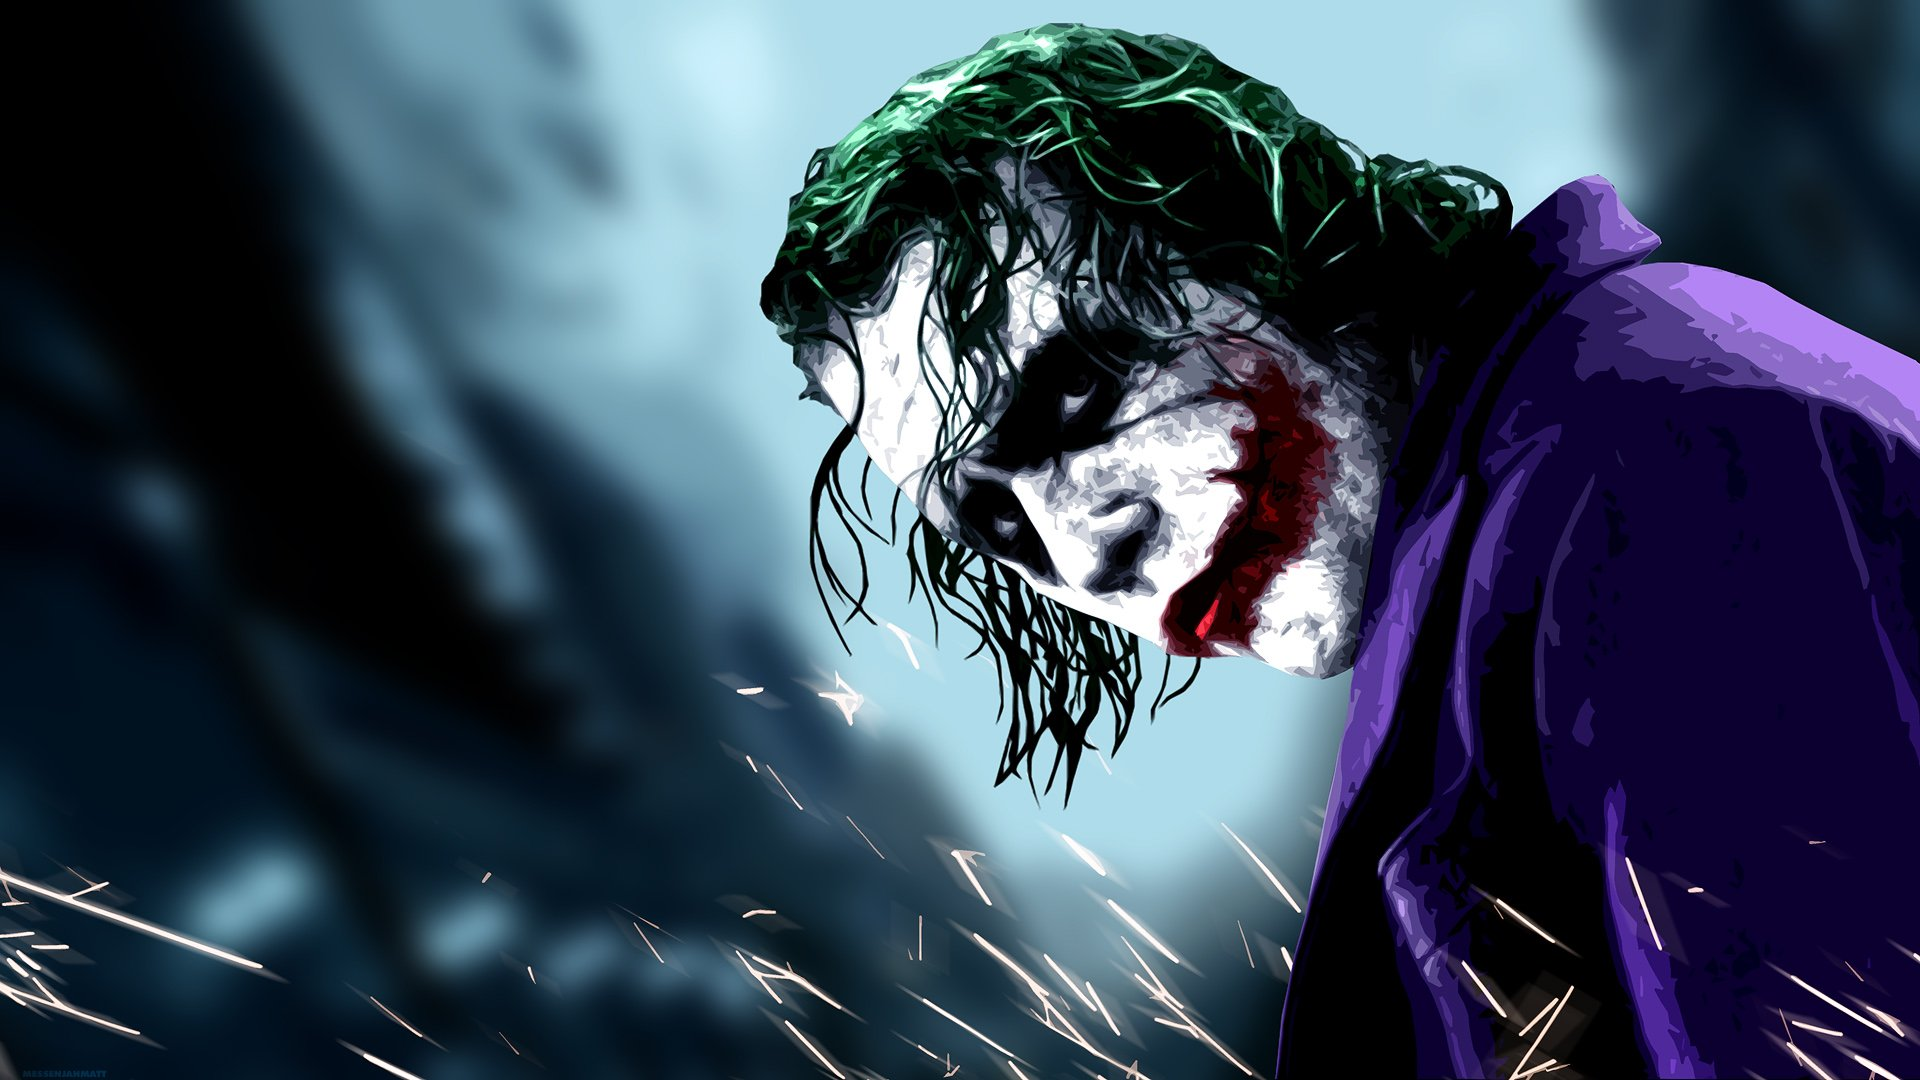 Hd wallpaper of joker - Joker Hd Wallpaper Joker Pictures Cool Wallpapers